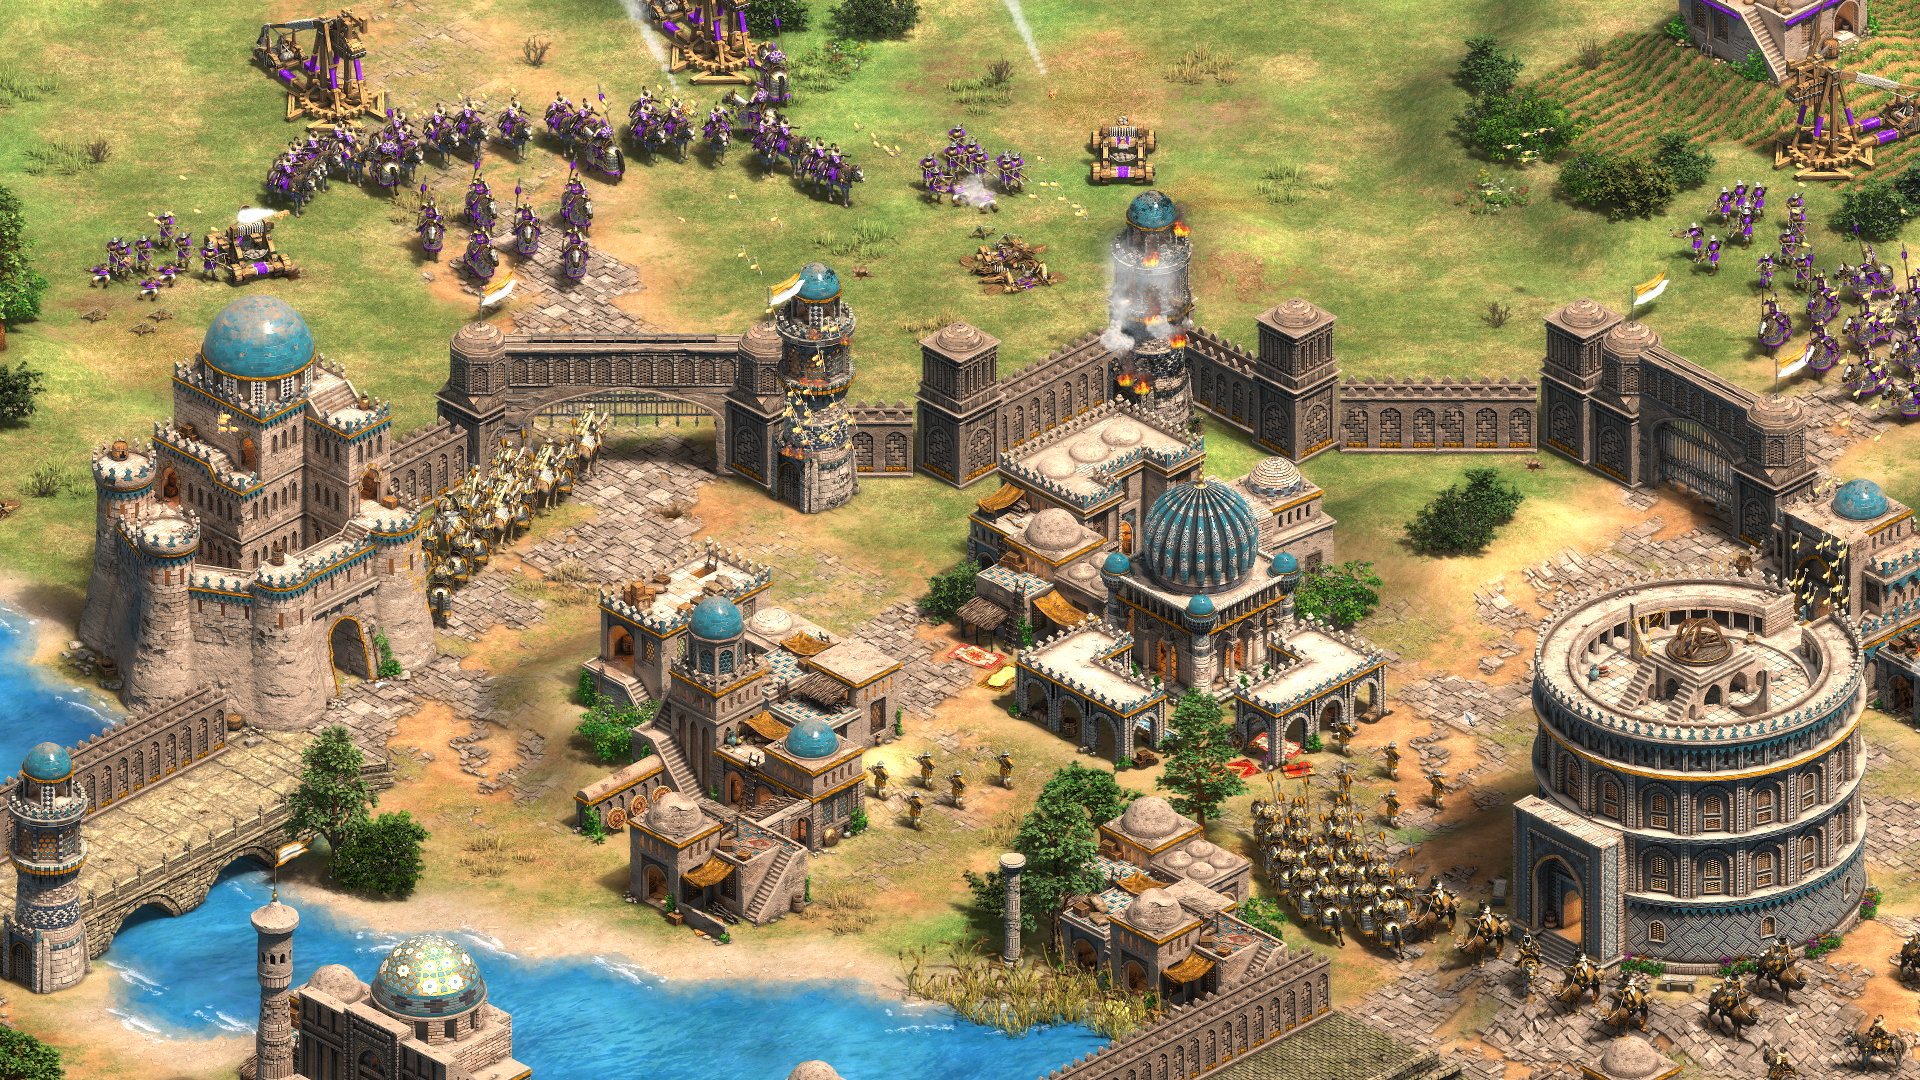 Age Of Empires II: Definitive Edition New Update Brings Quality Of Life Changes, Including New Autoscouting Feature